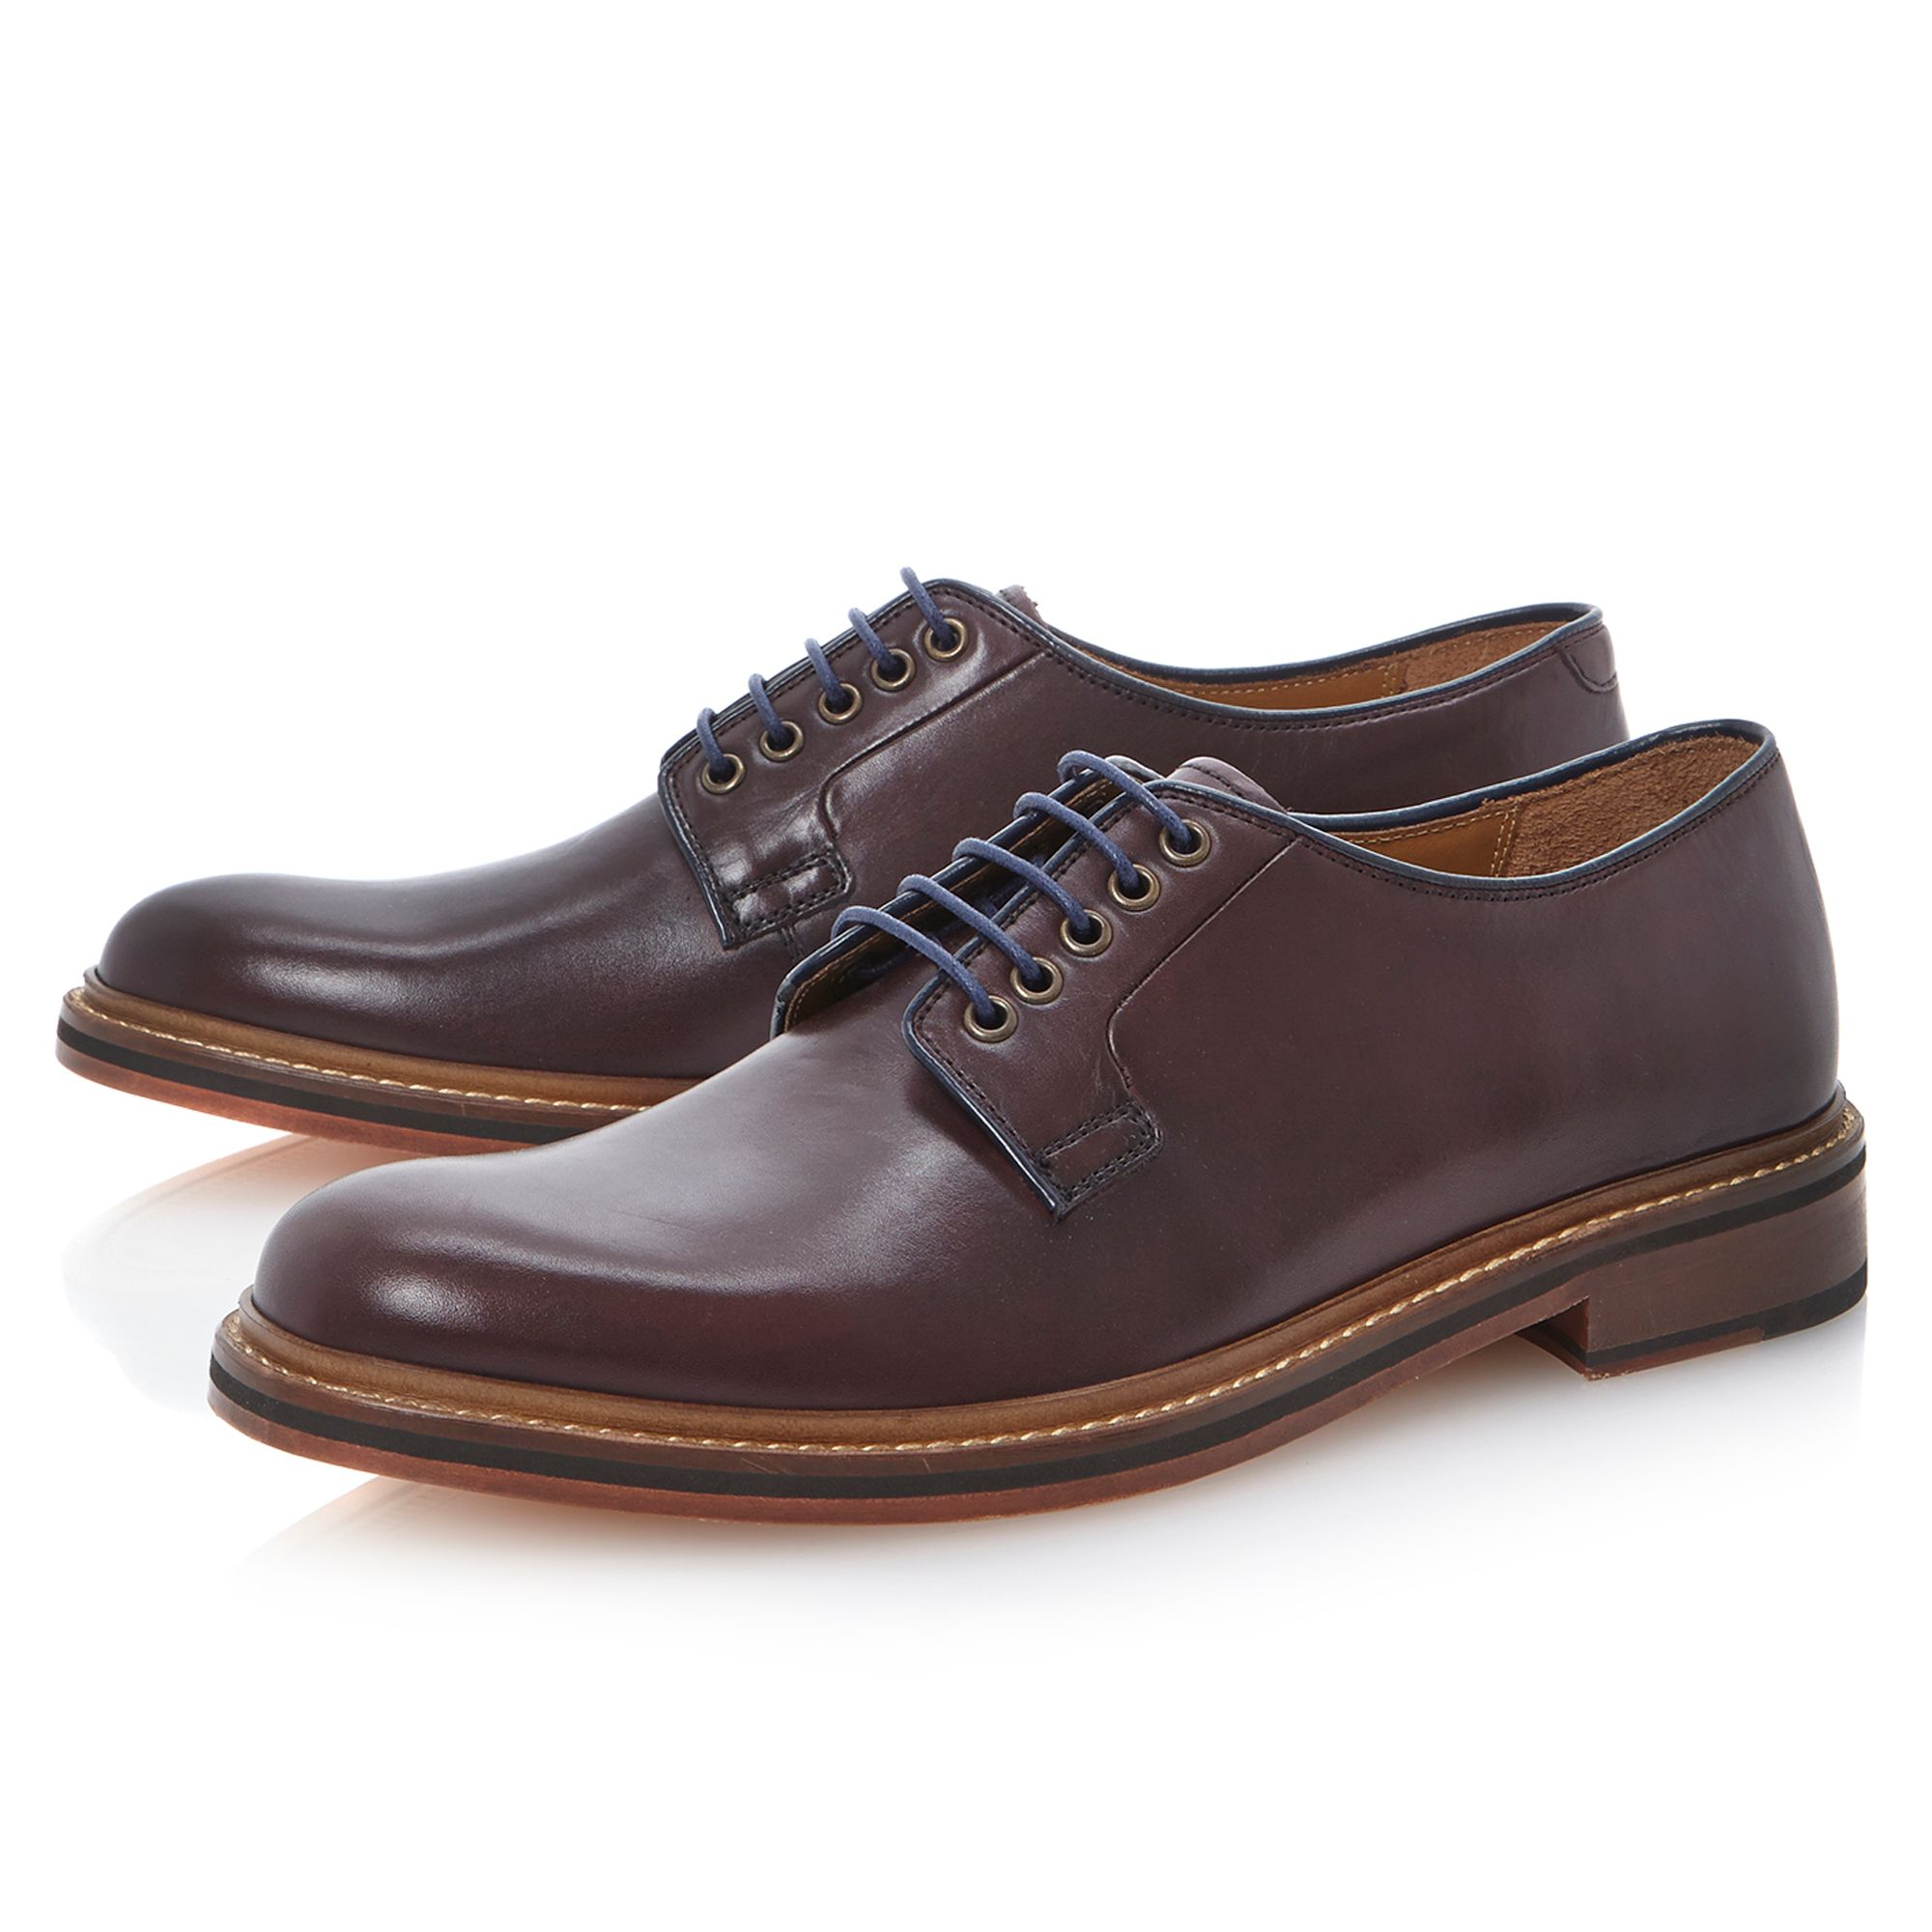 Bishopsgate heavy gibson lace up